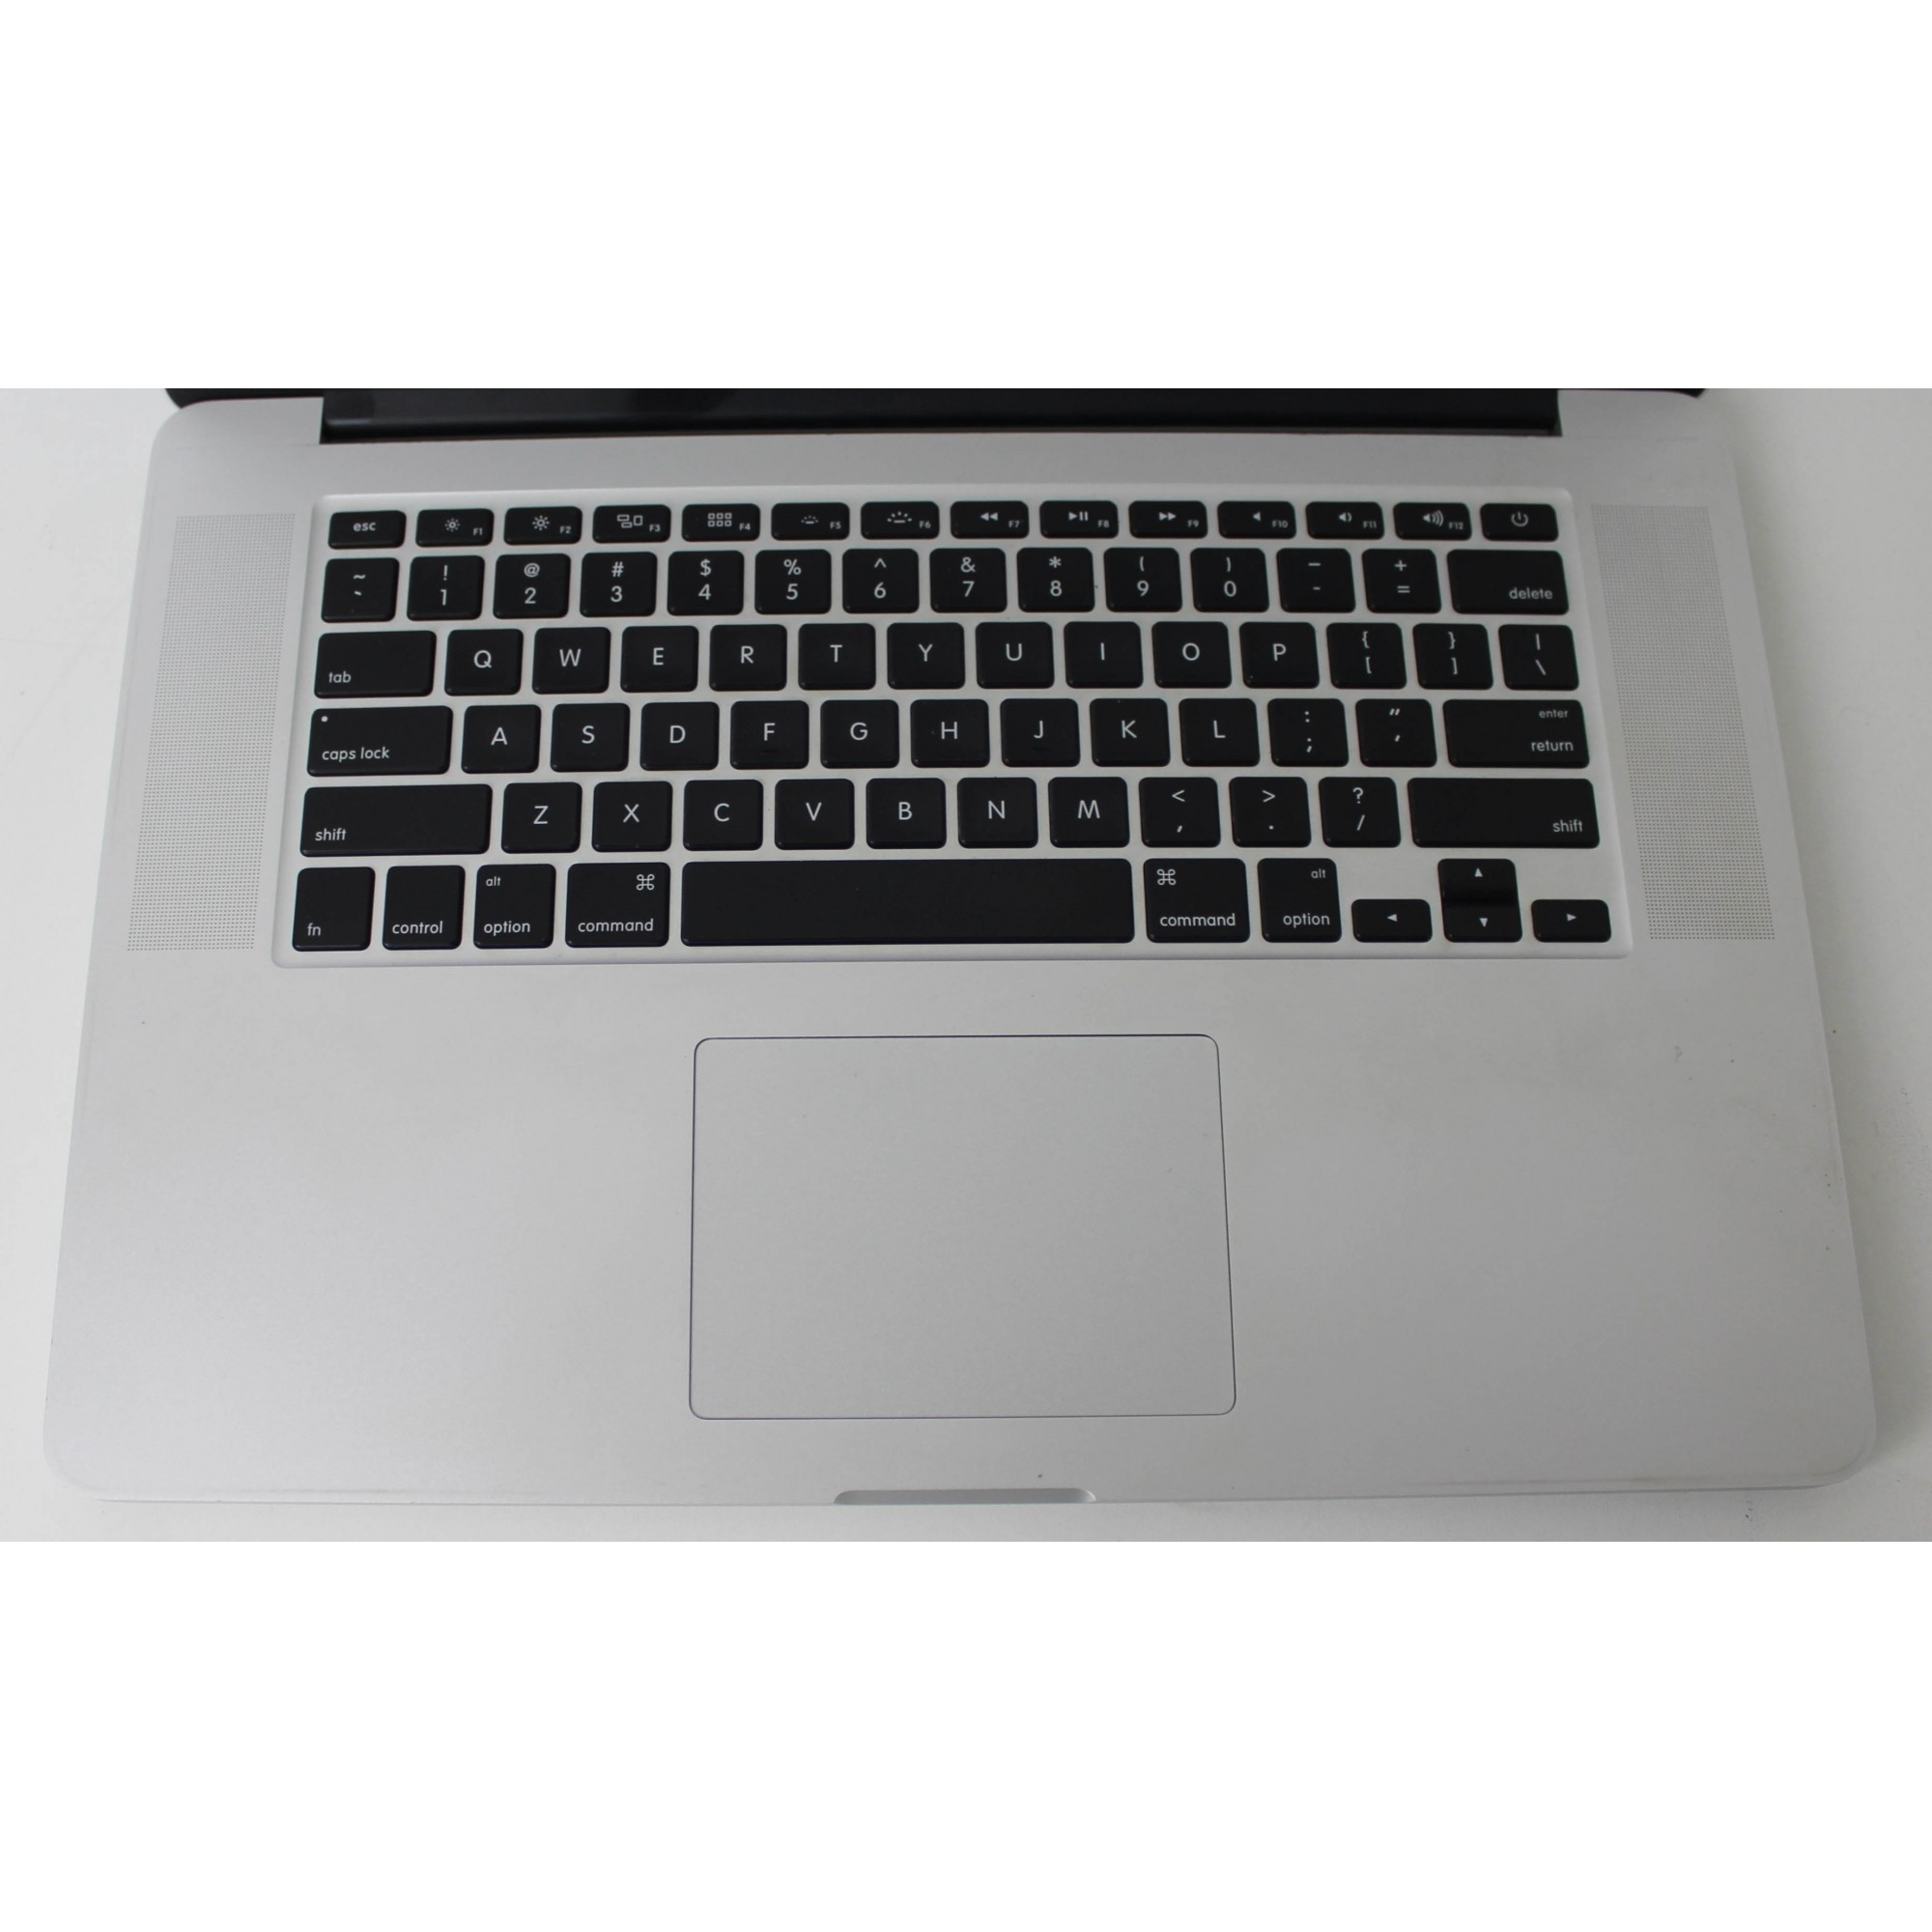 "MacBook Pro MGXC2LL/A 15"" Intel core i7 2.5GHz 16GB SSD-500GB + 2GB Dedicado"